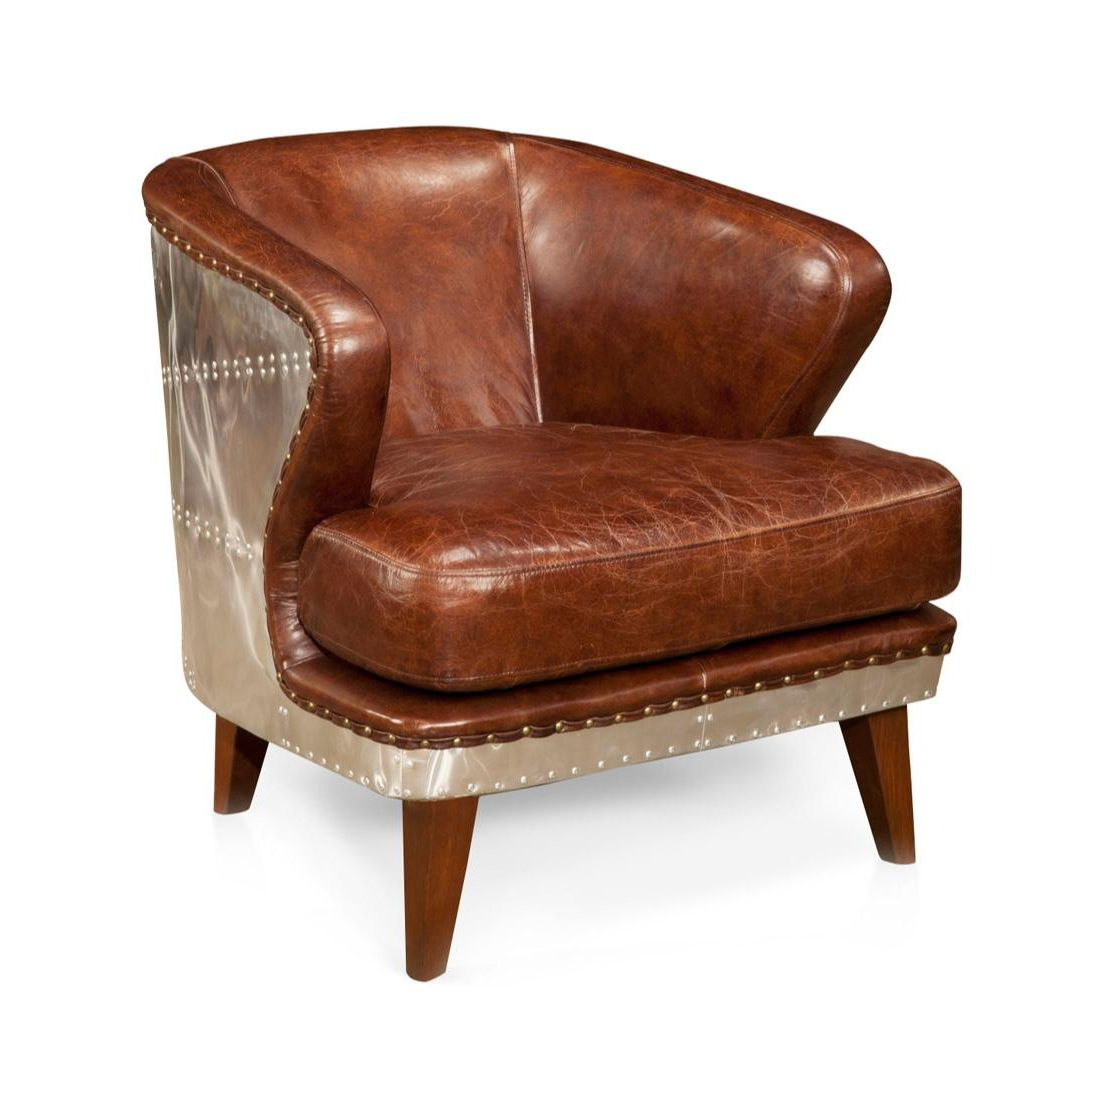 Genial Inject Some Serious Style Into Your Living Room With This Tough And Unique  Club Chair.